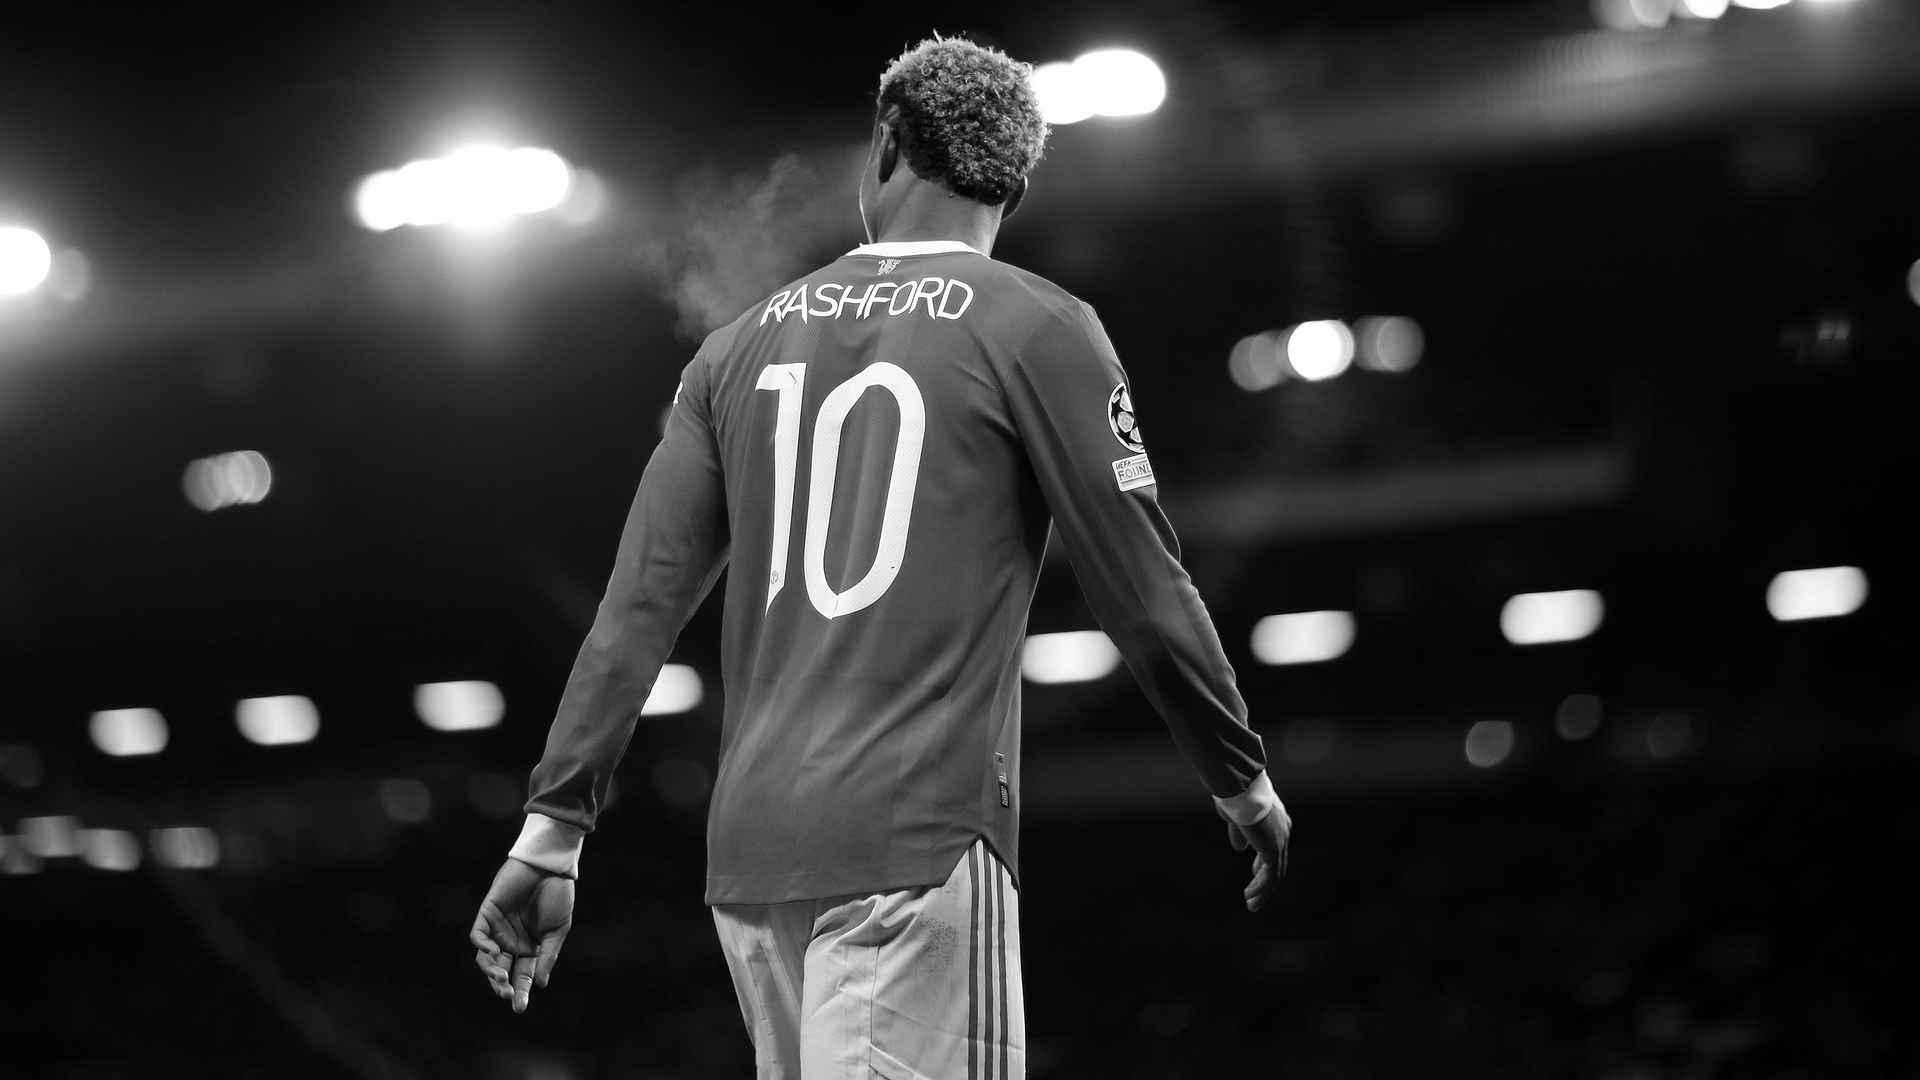 Rashford breaks his silence with a message to fans